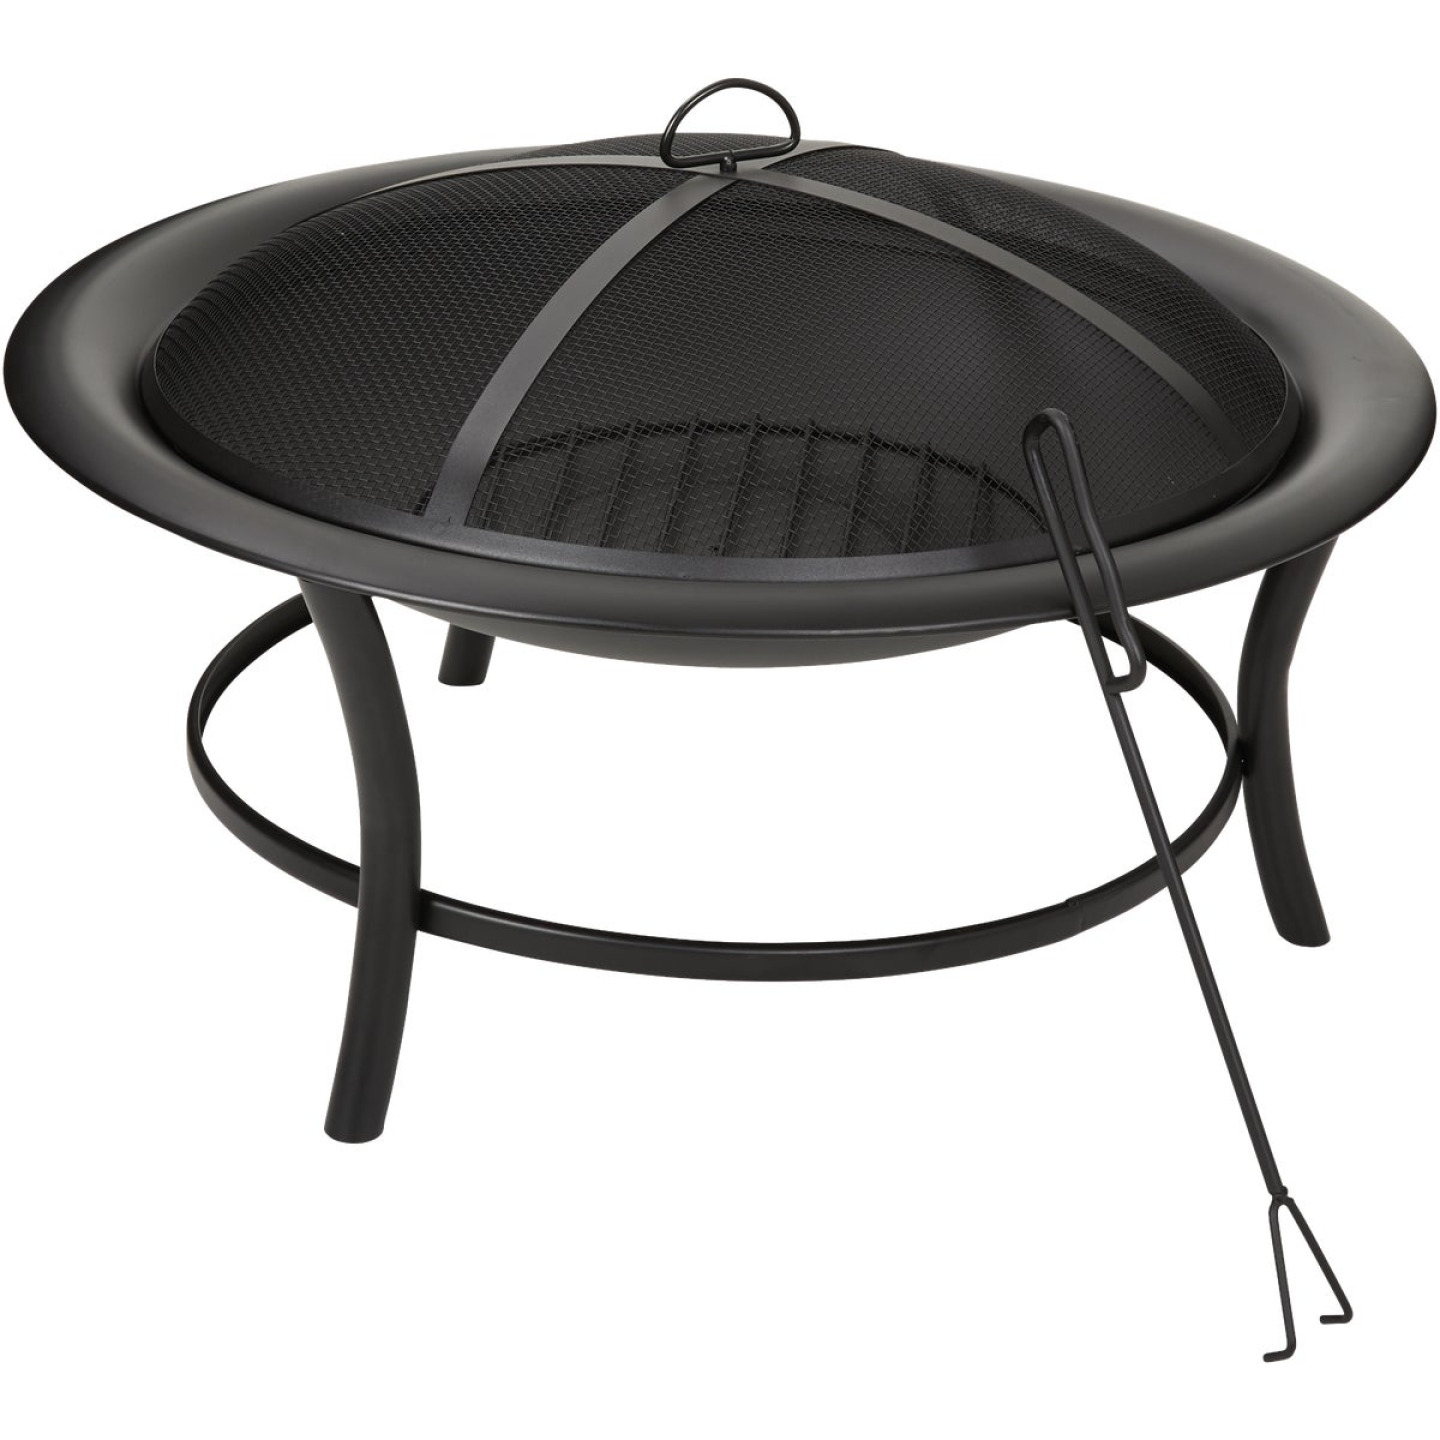 Outdoor Expressions 30 In. Round Steel Fire Pit Image 1